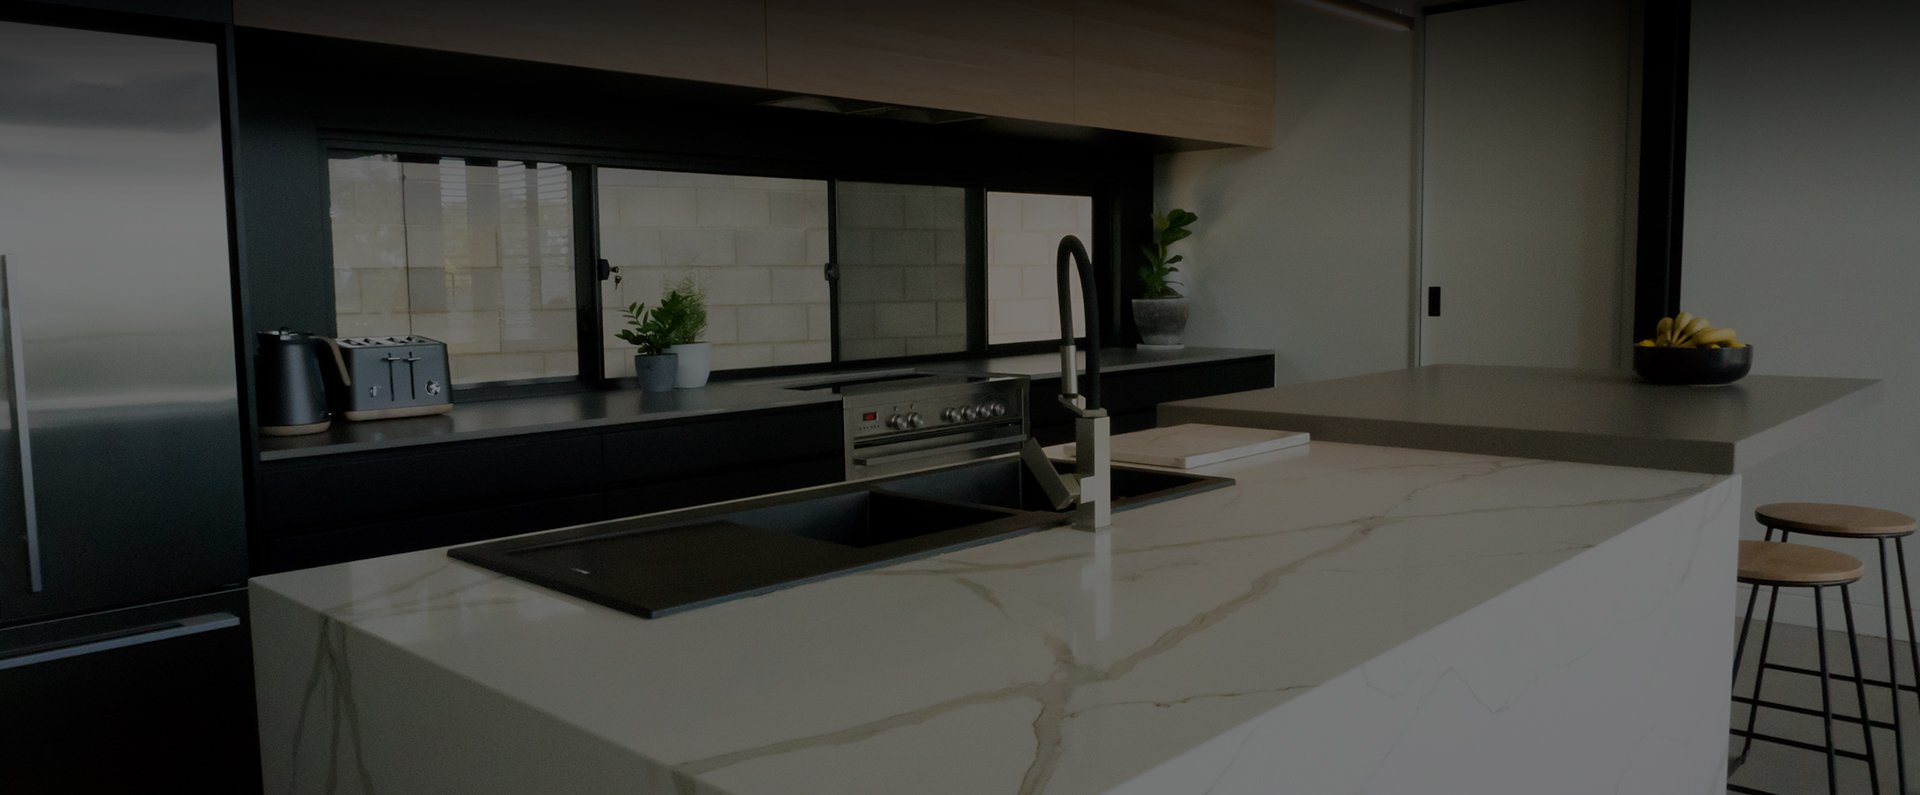 Designer Kitchen 3